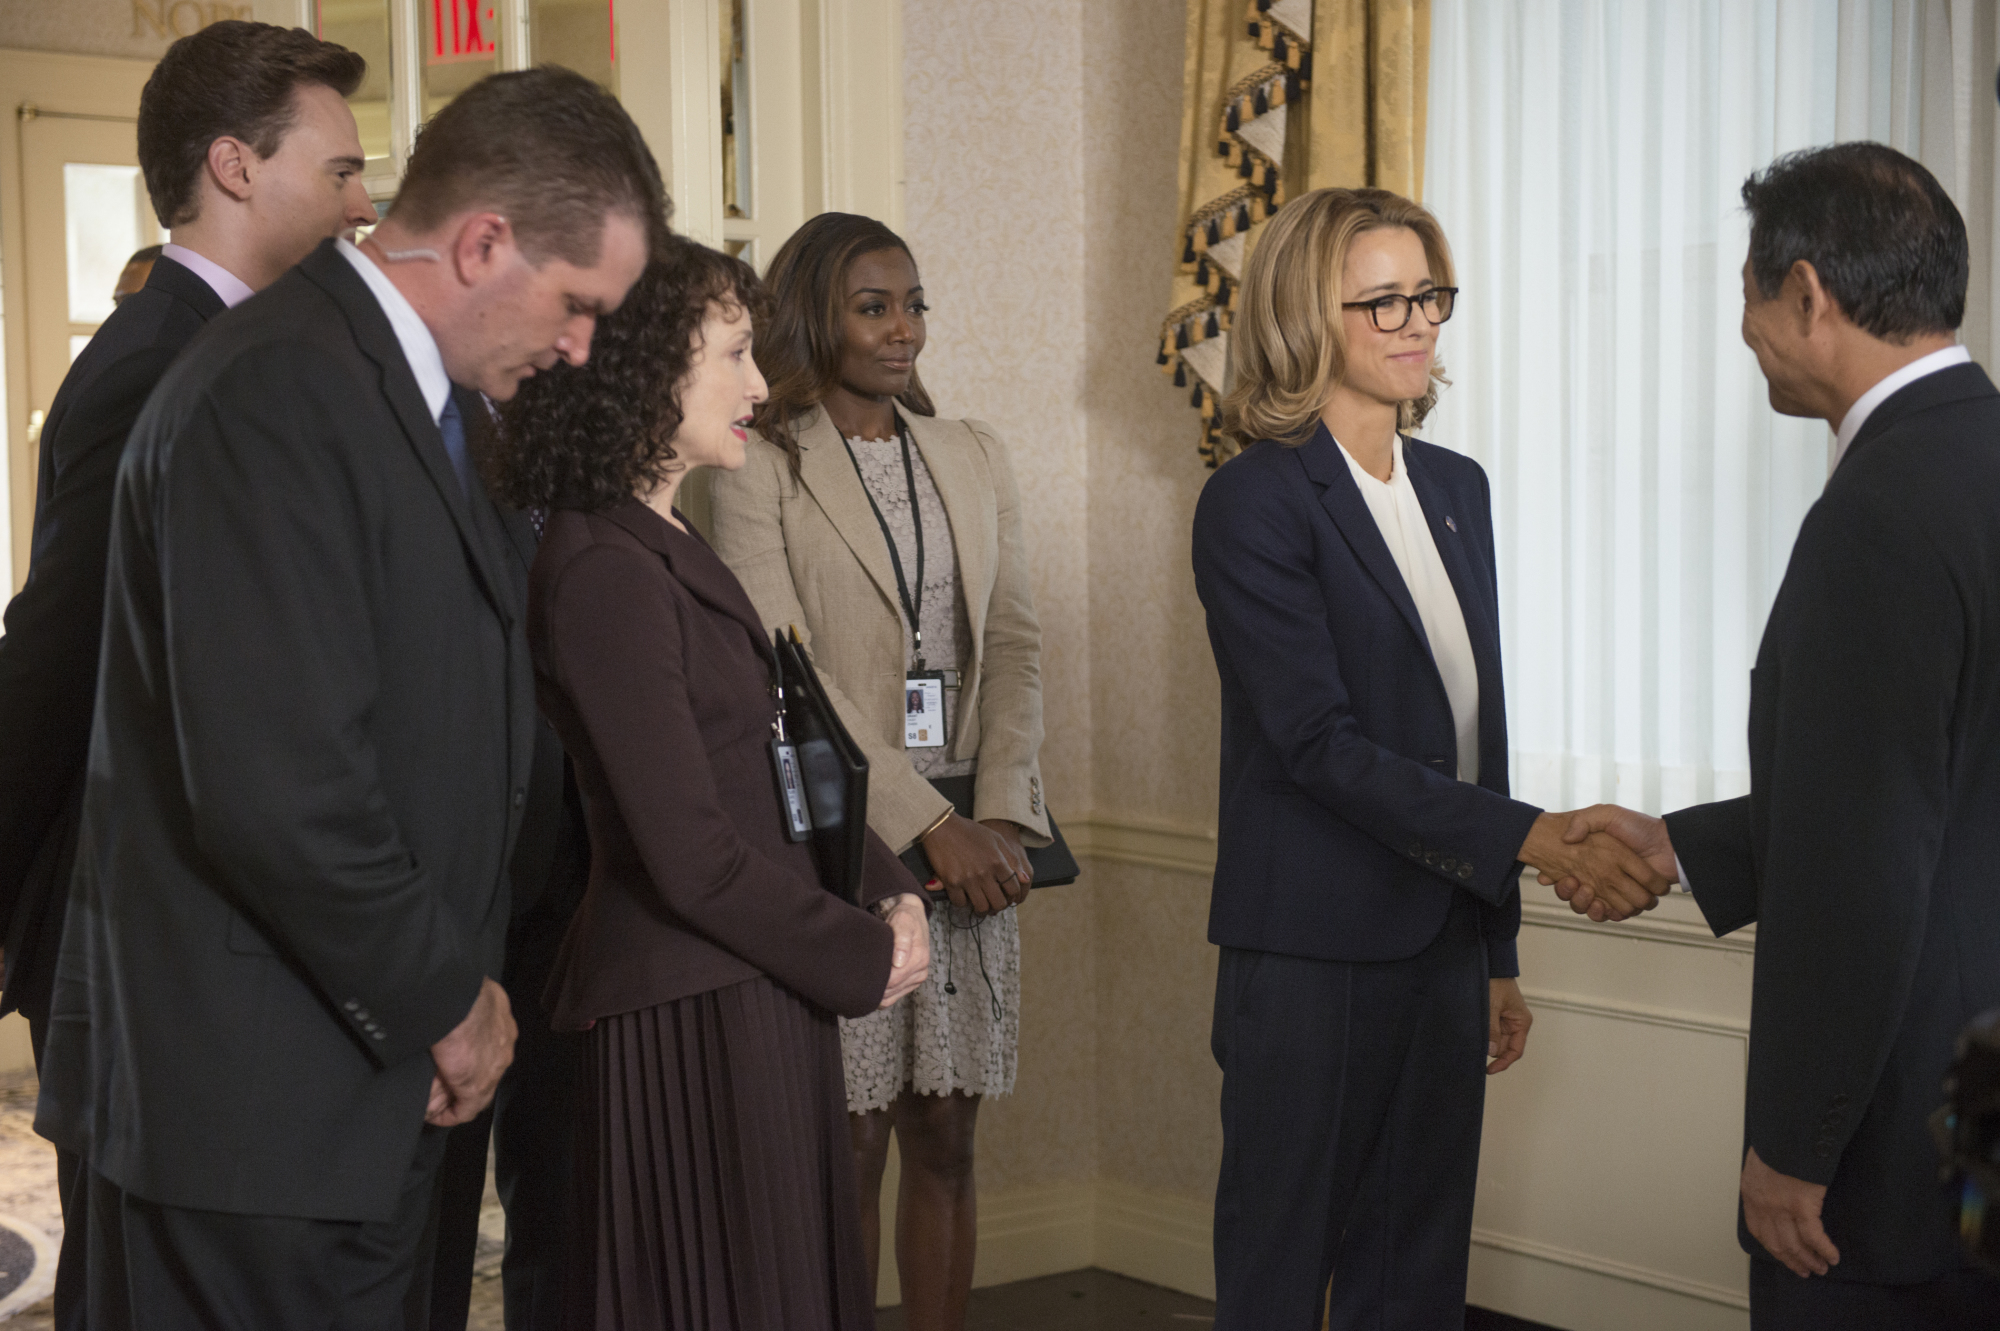 Episode 4 - Madam Secretary